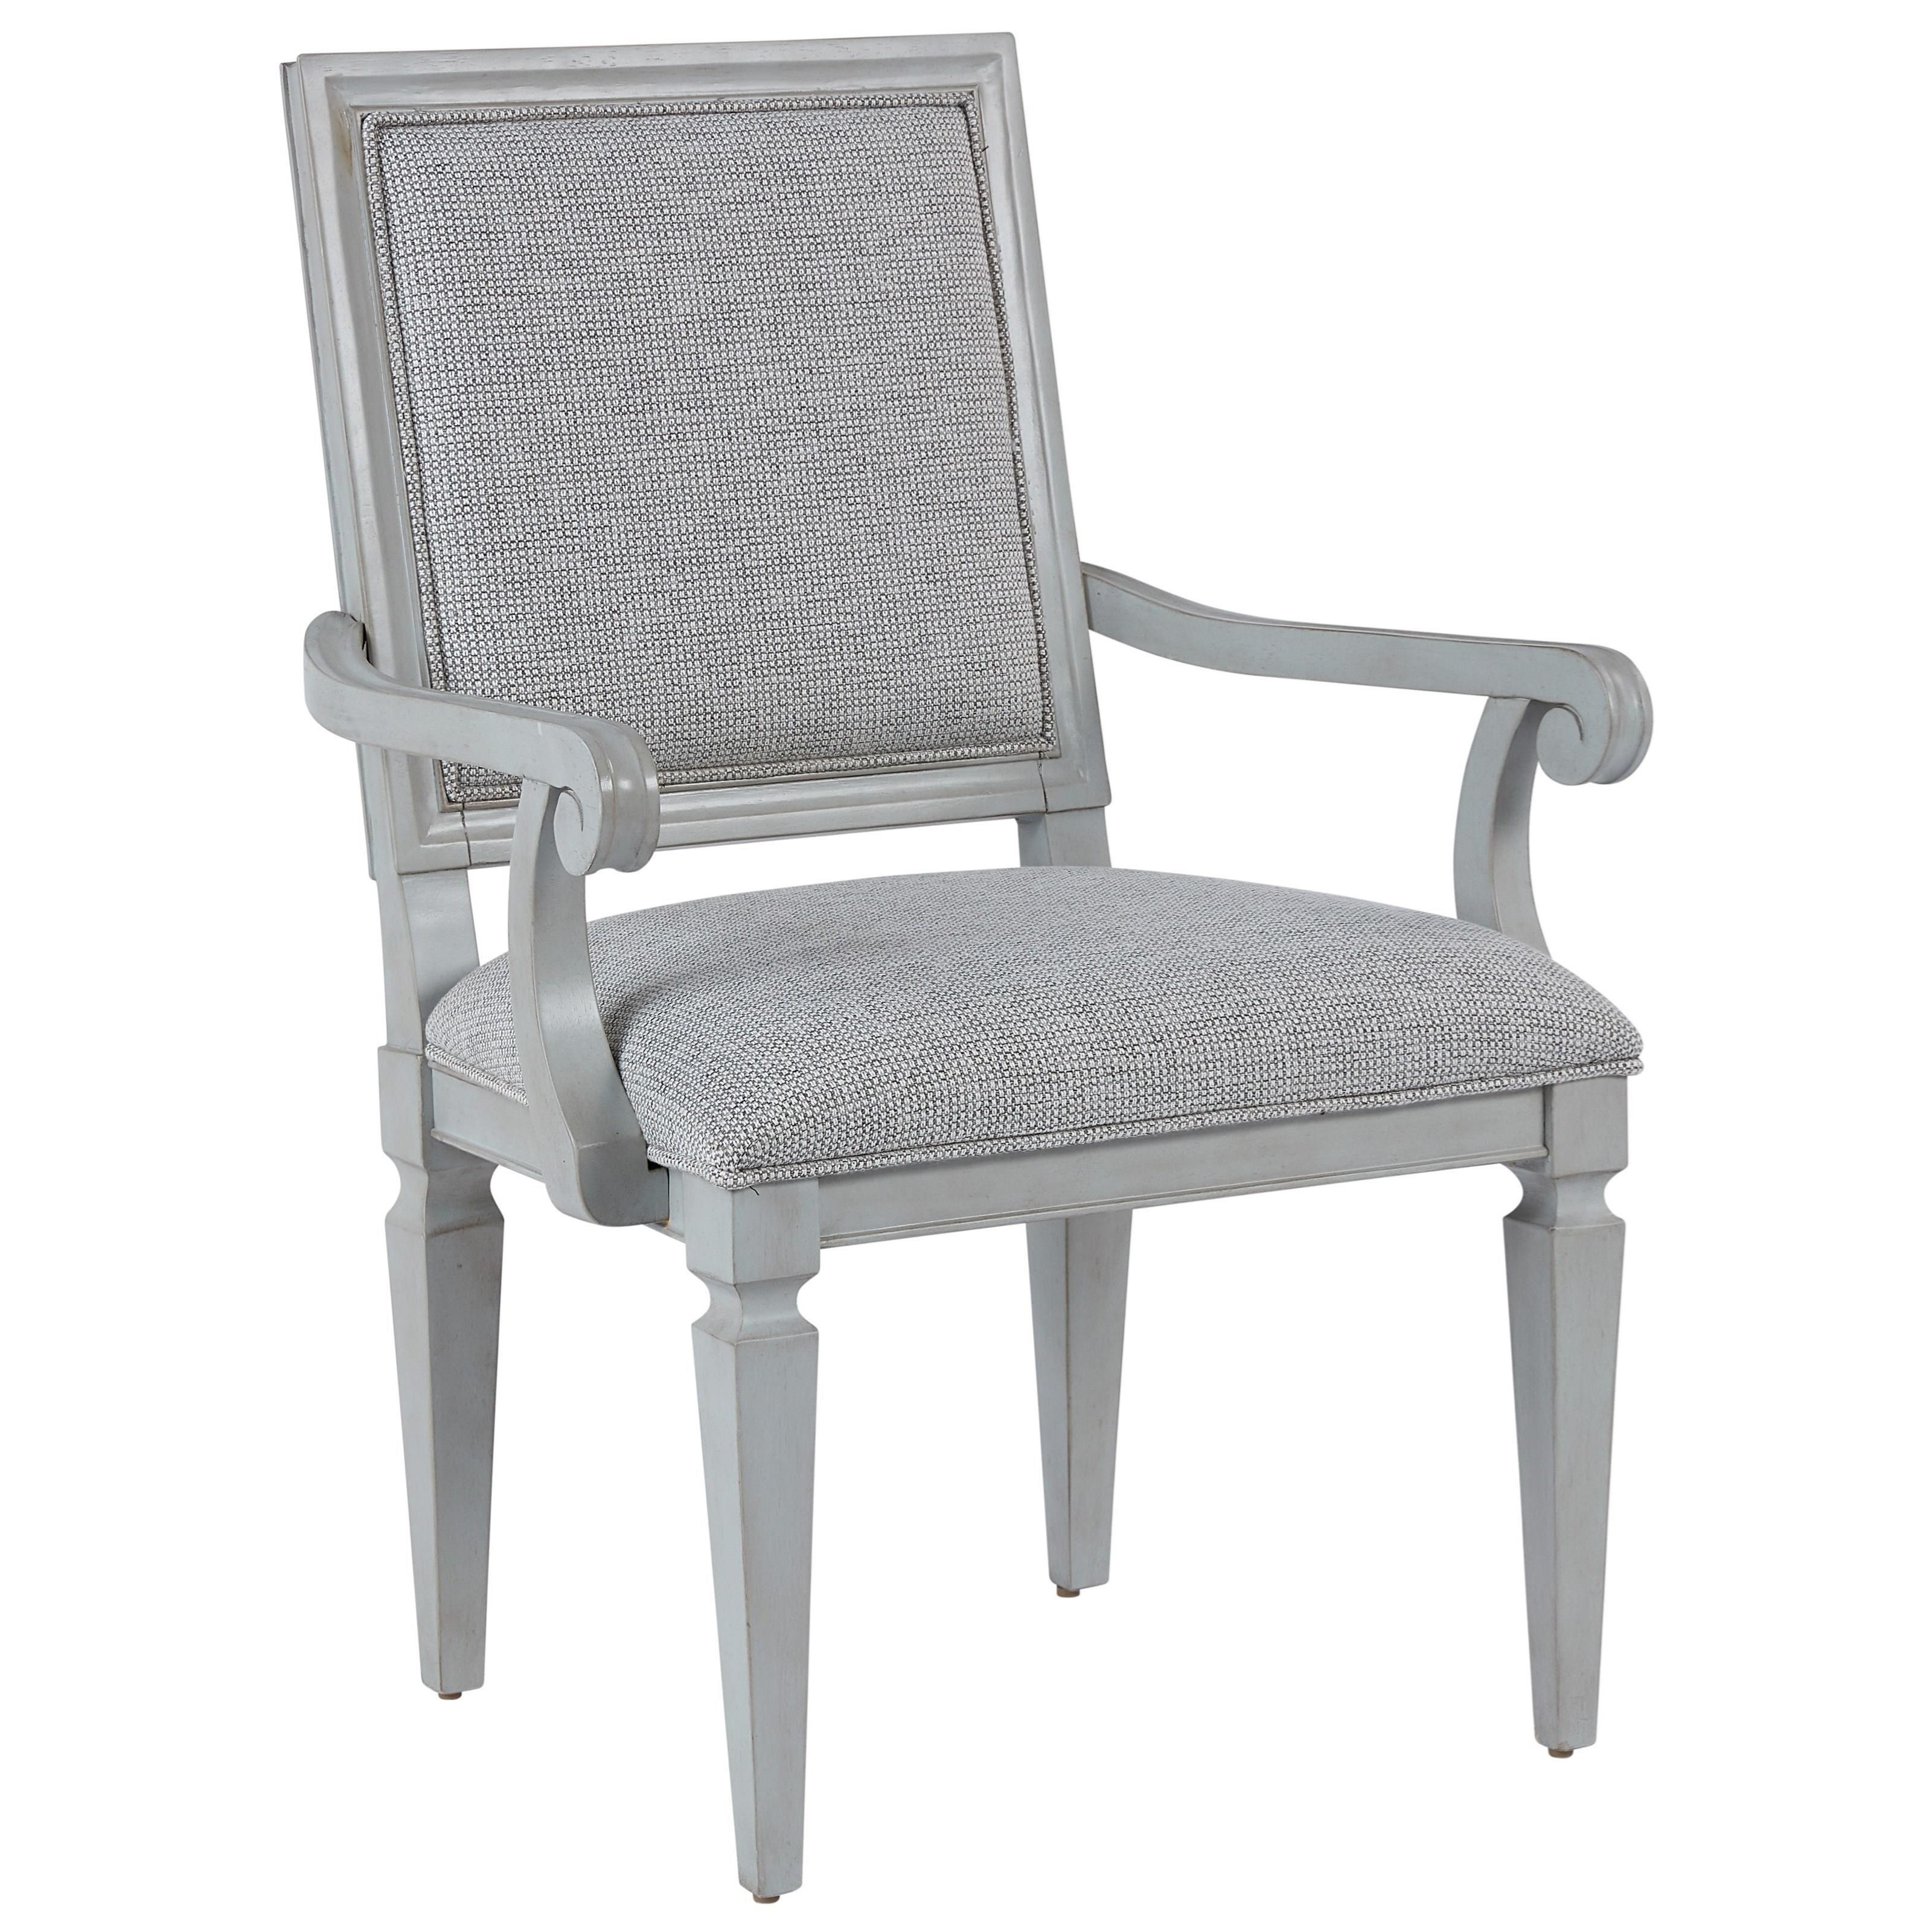 Summer Hill Woven Accent Arm Chair by Universal at Baer's Furniture